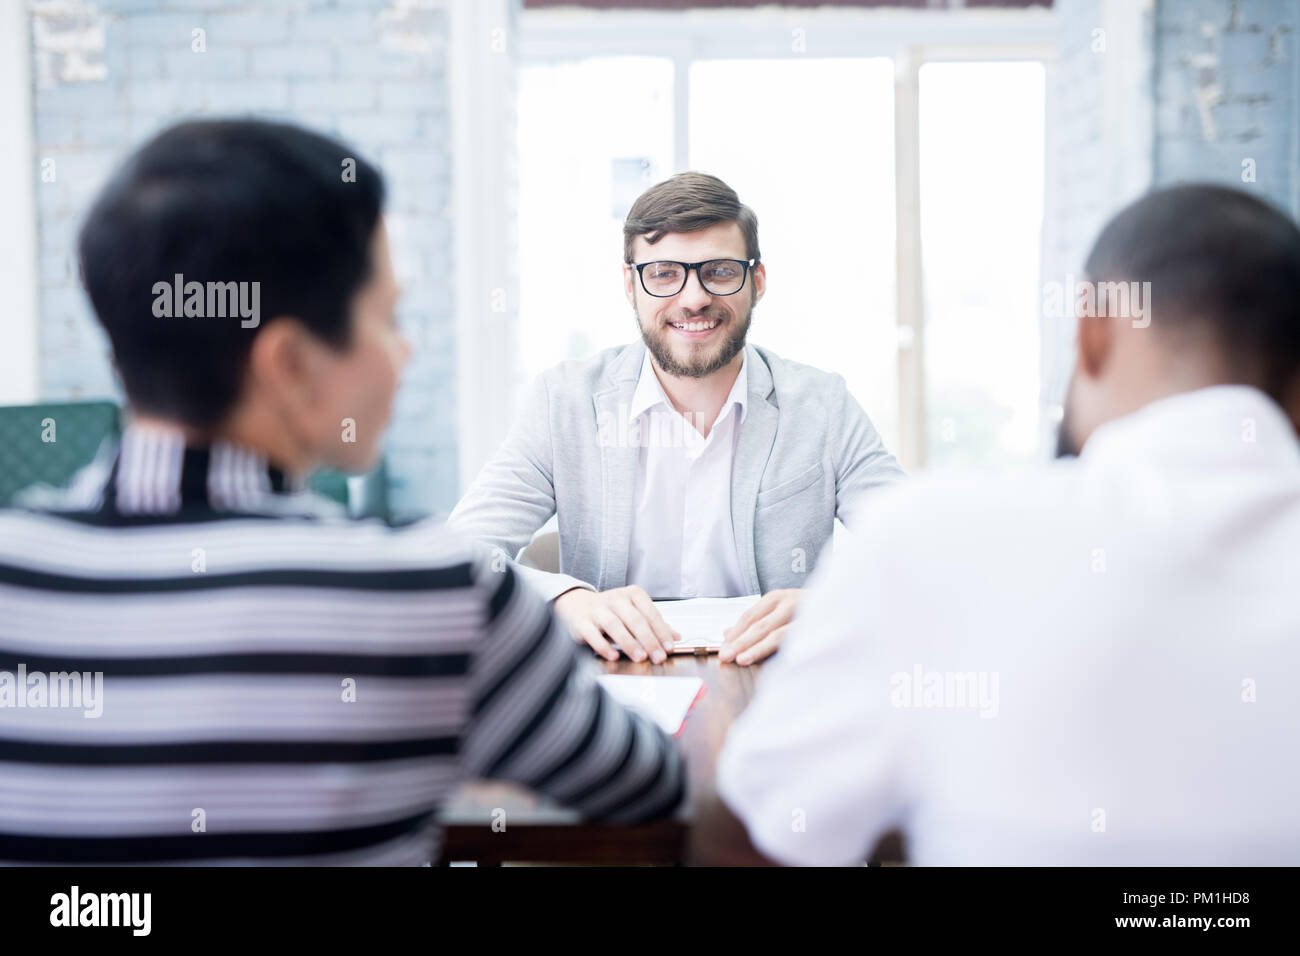 Job applicant having an interview - Stock Image